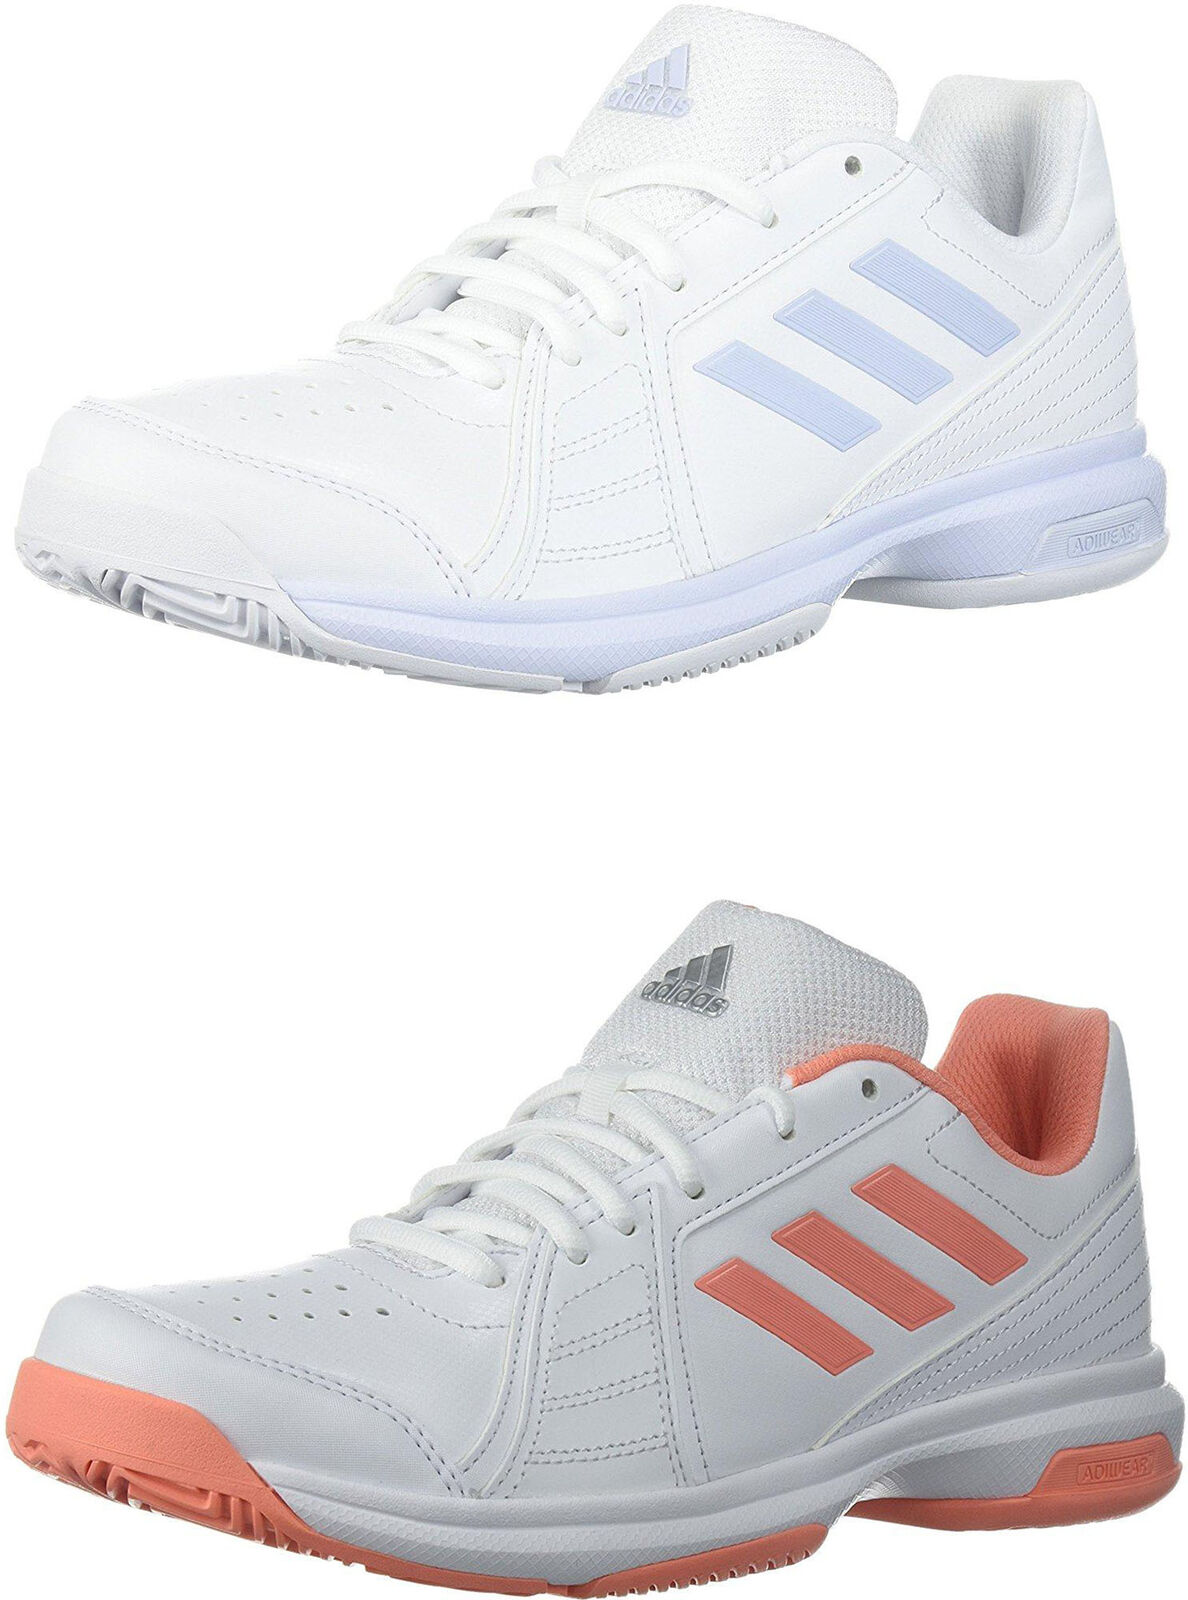 adidas Women's Aspire Tennis Shoes, 2 Colors